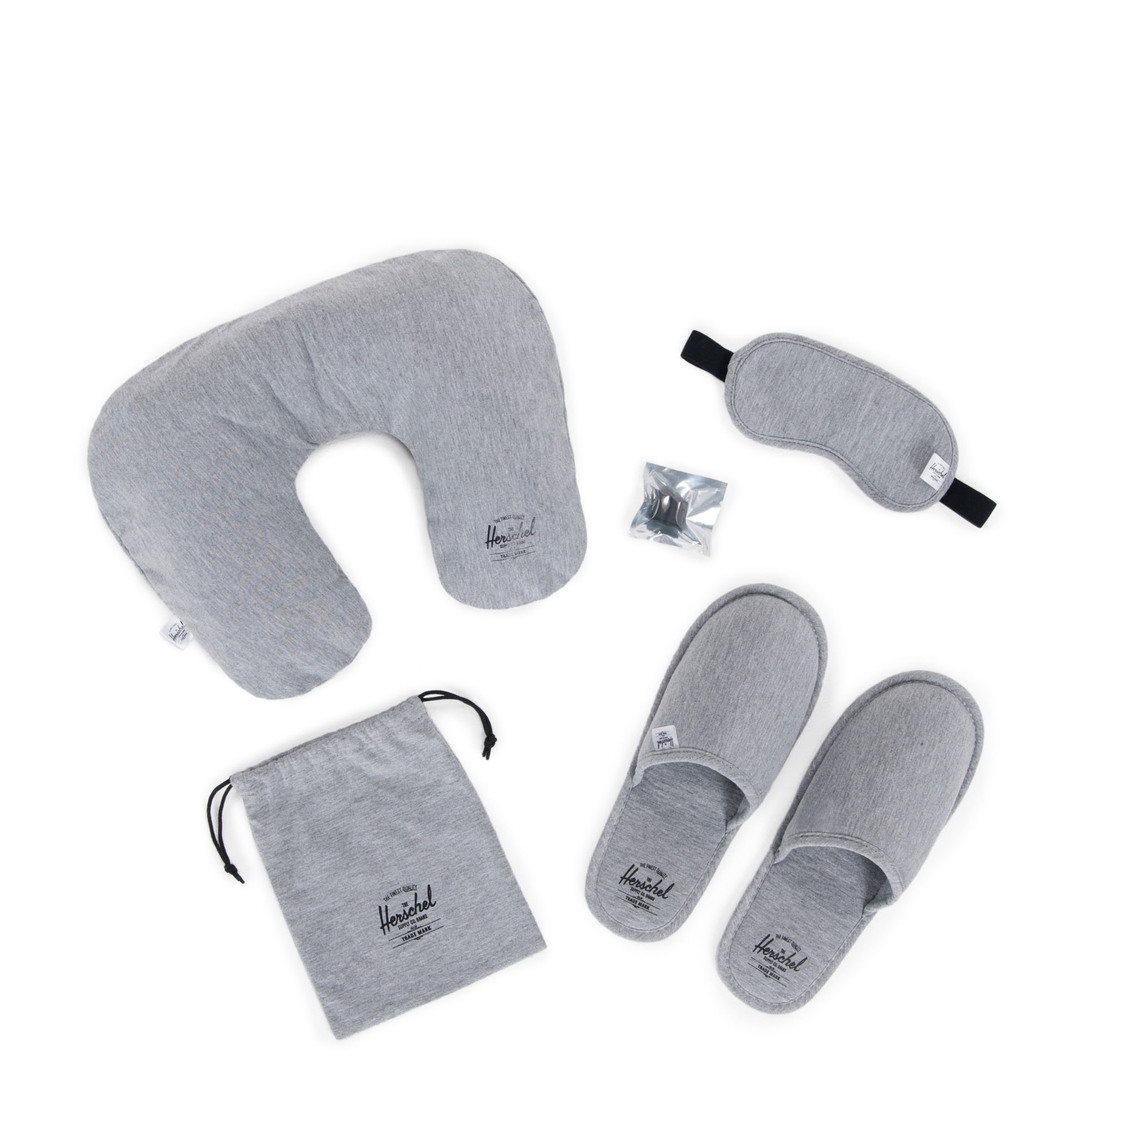 Amenity Kit SM Heathered Grey 10542-02256-SM